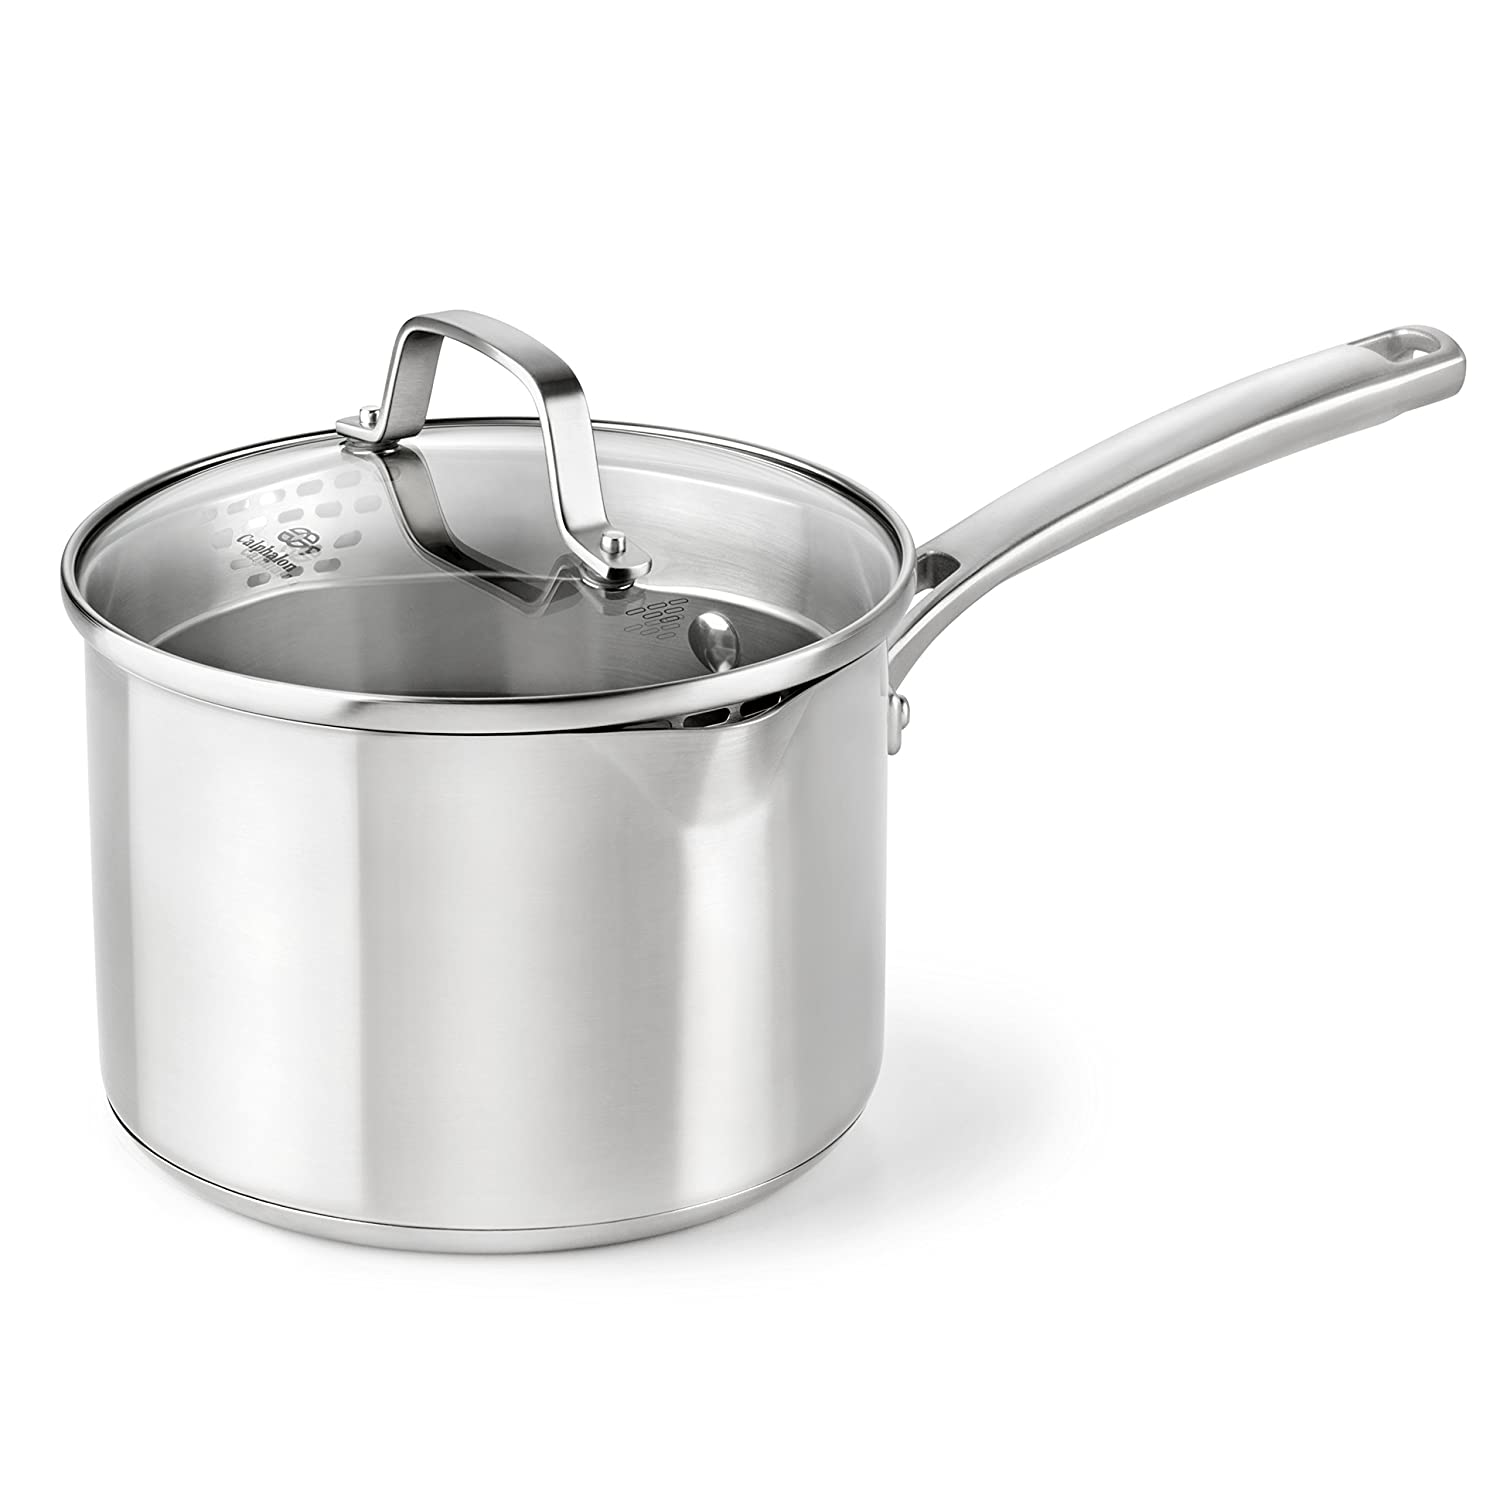 Calphalon Classic Stainless Steel Cookware, Sauce Pan, 3 1/2-quart